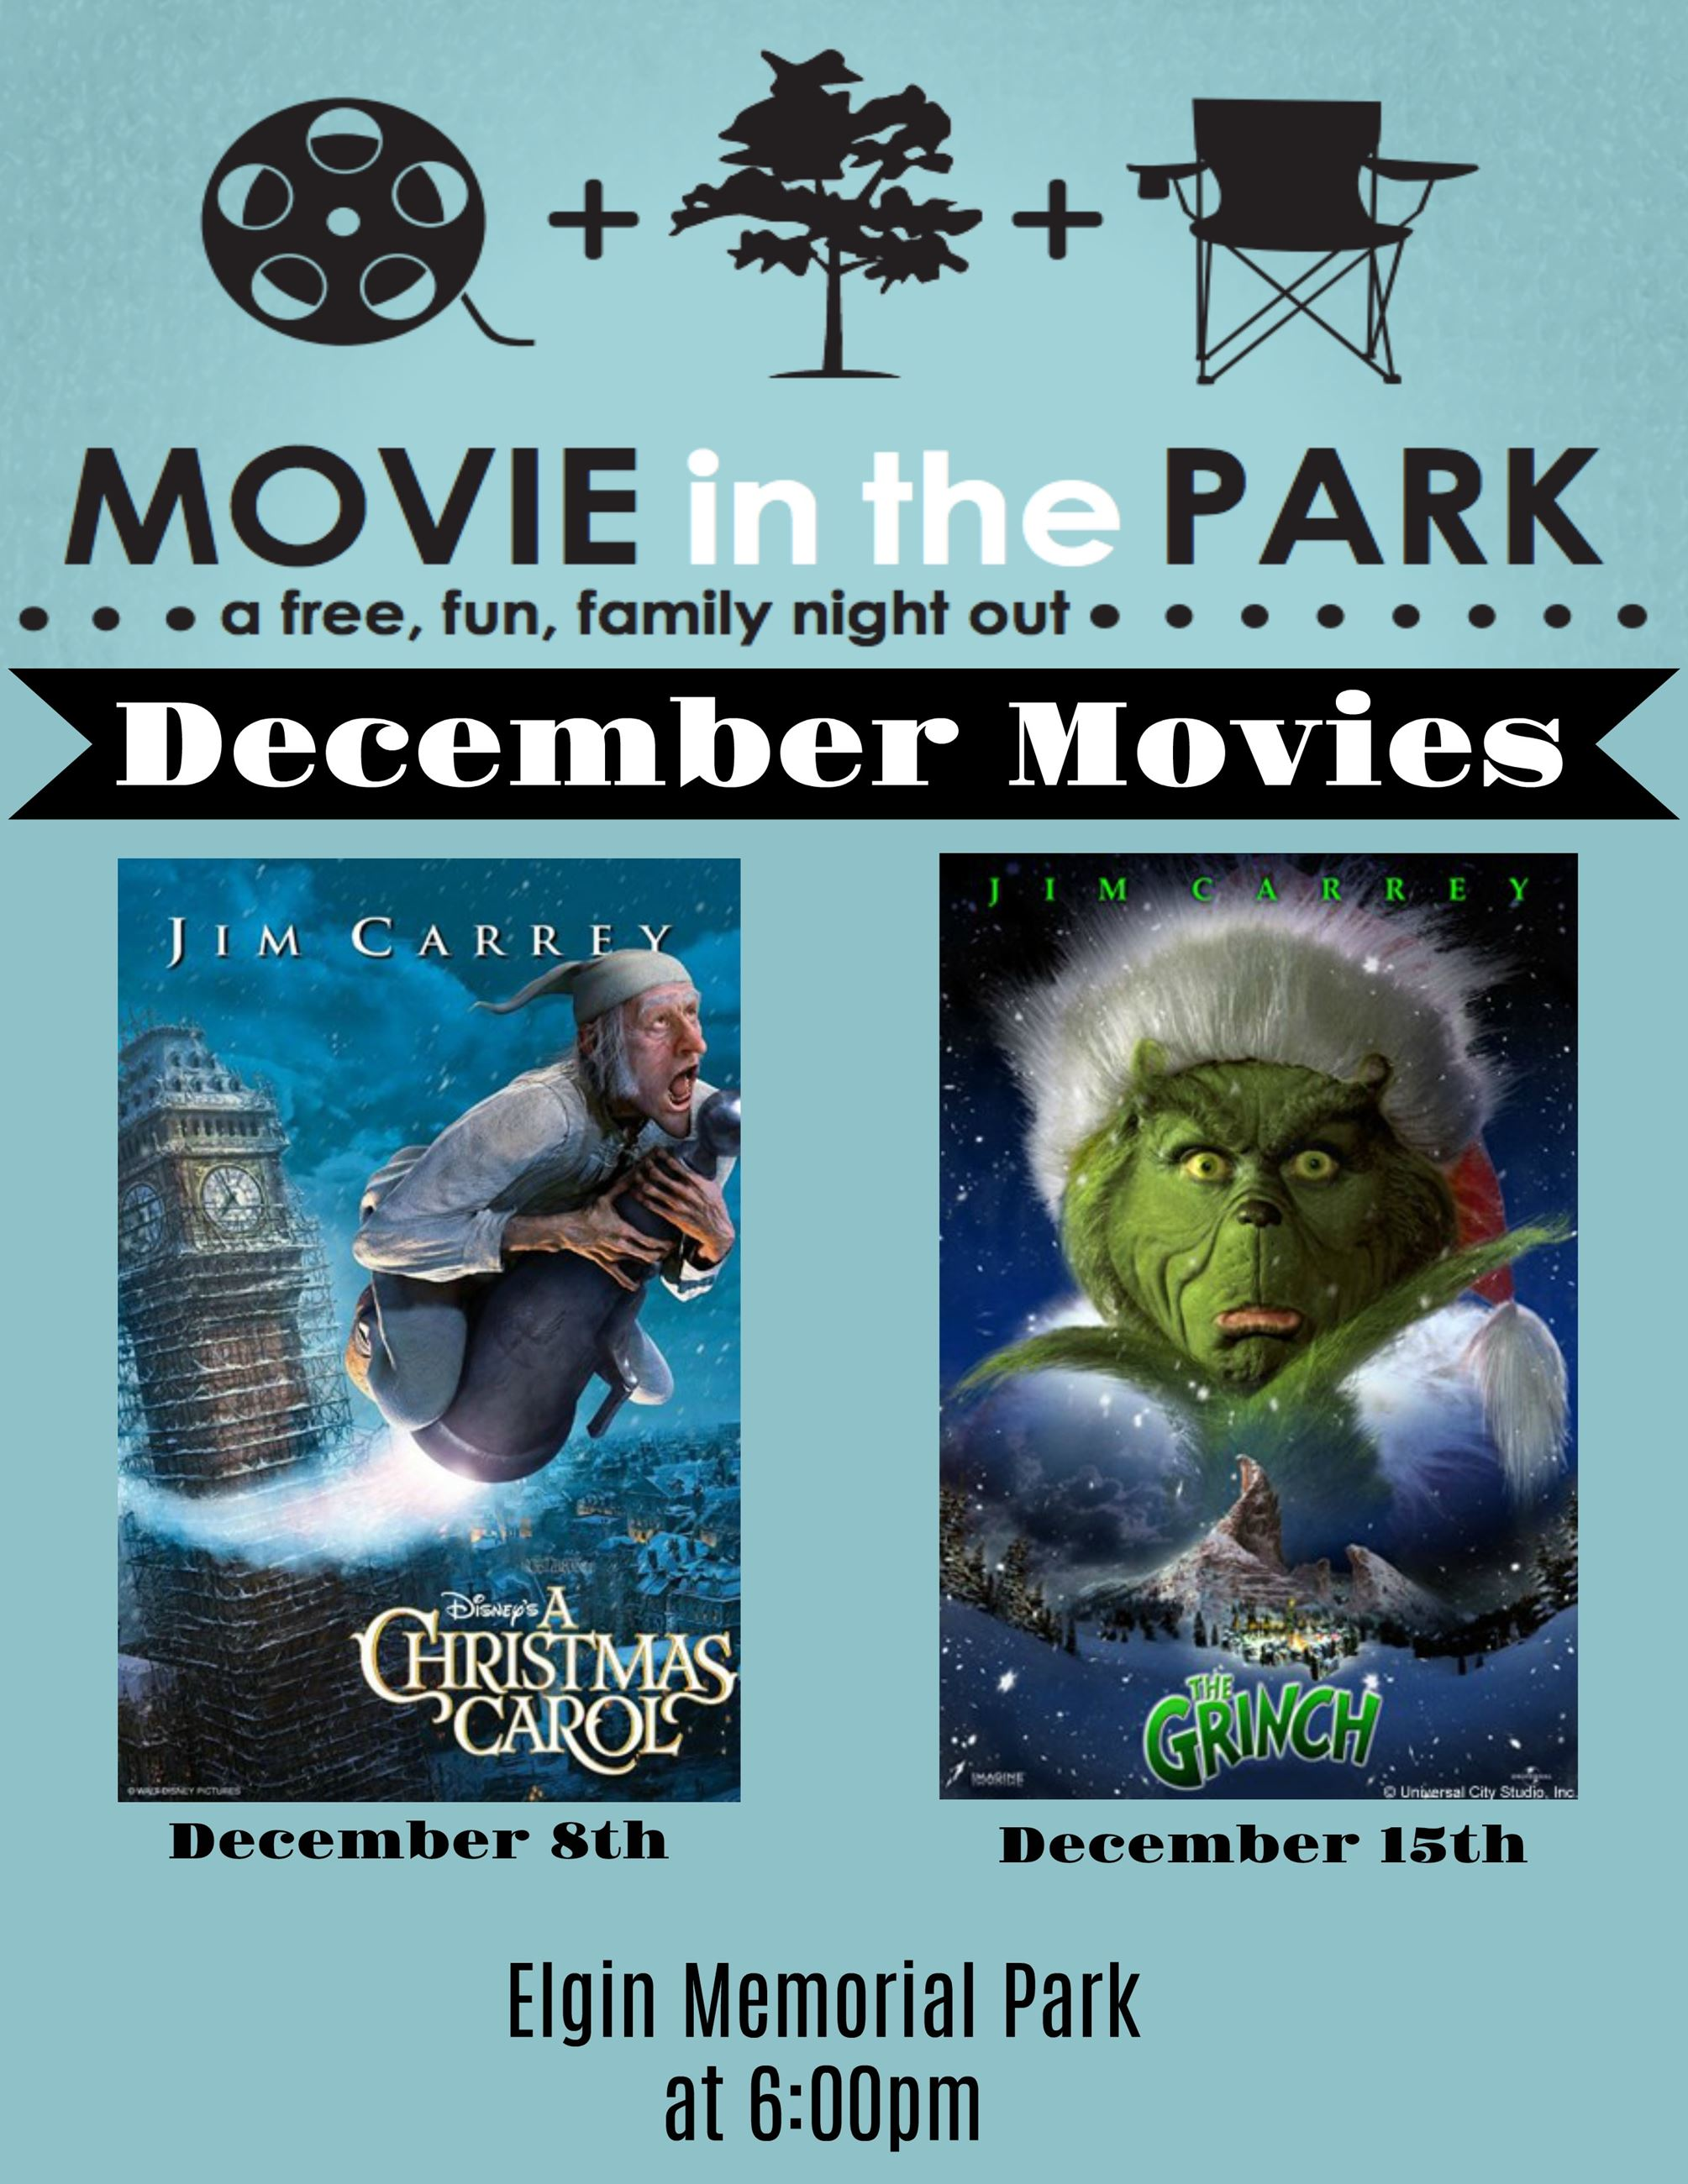 December Movies Flyer